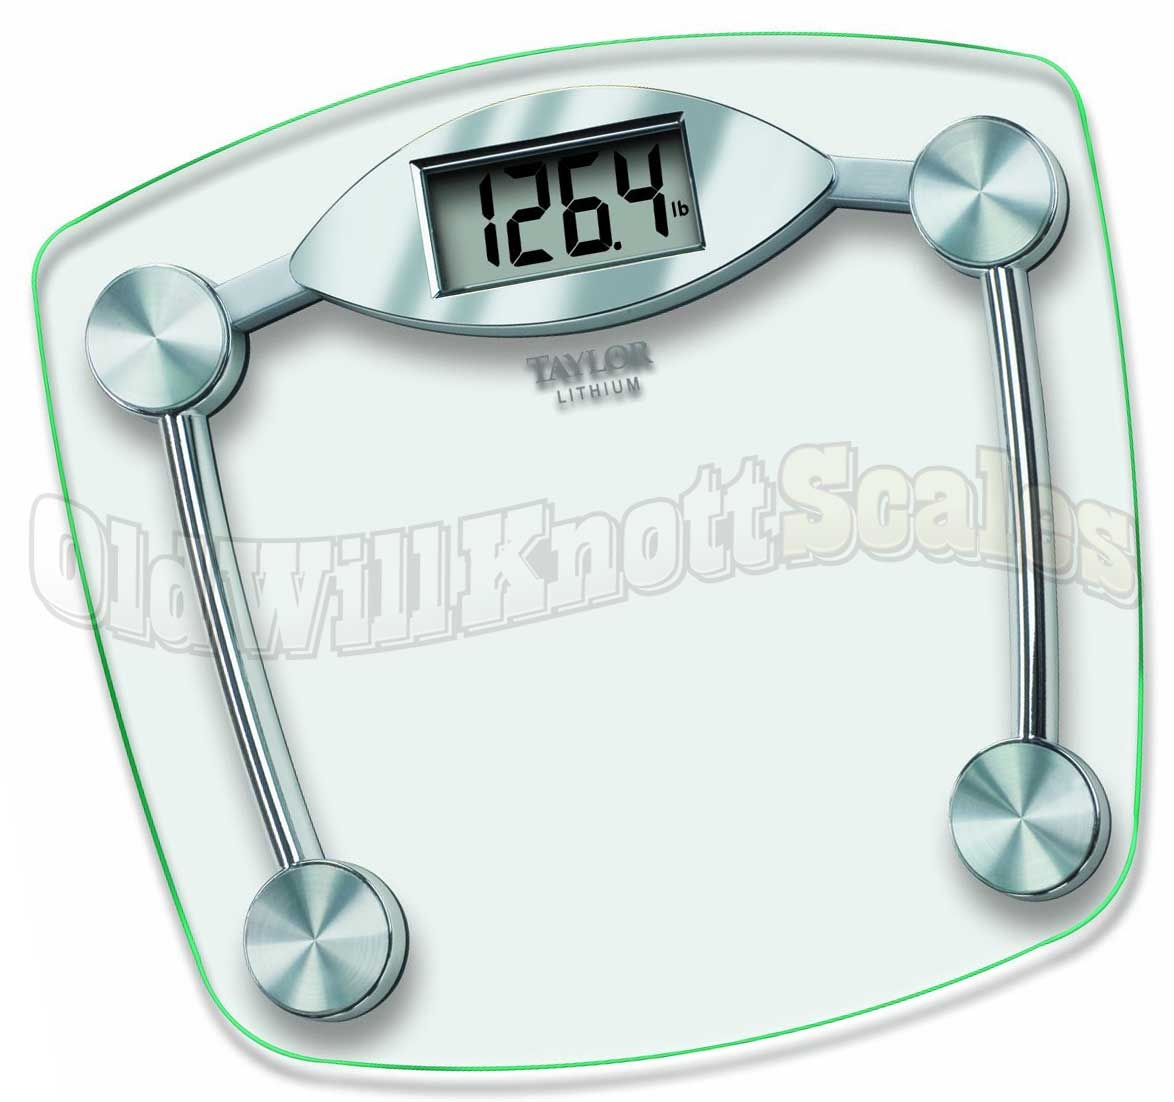 Merveilleux Old Will Knott Scales